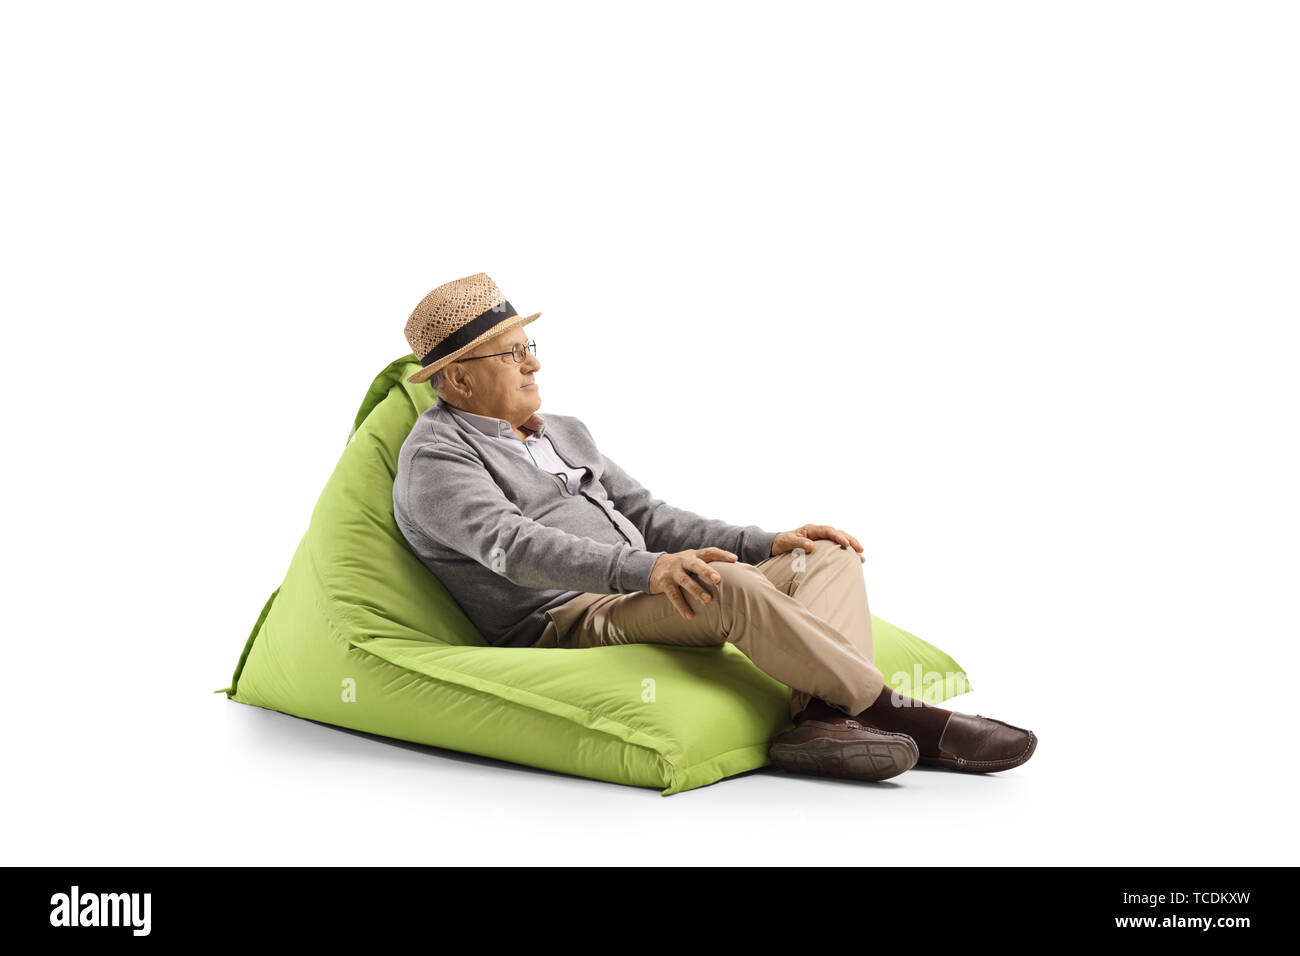 Elderly man resting on a bean-bag armchair isolated on white background - Stock Image